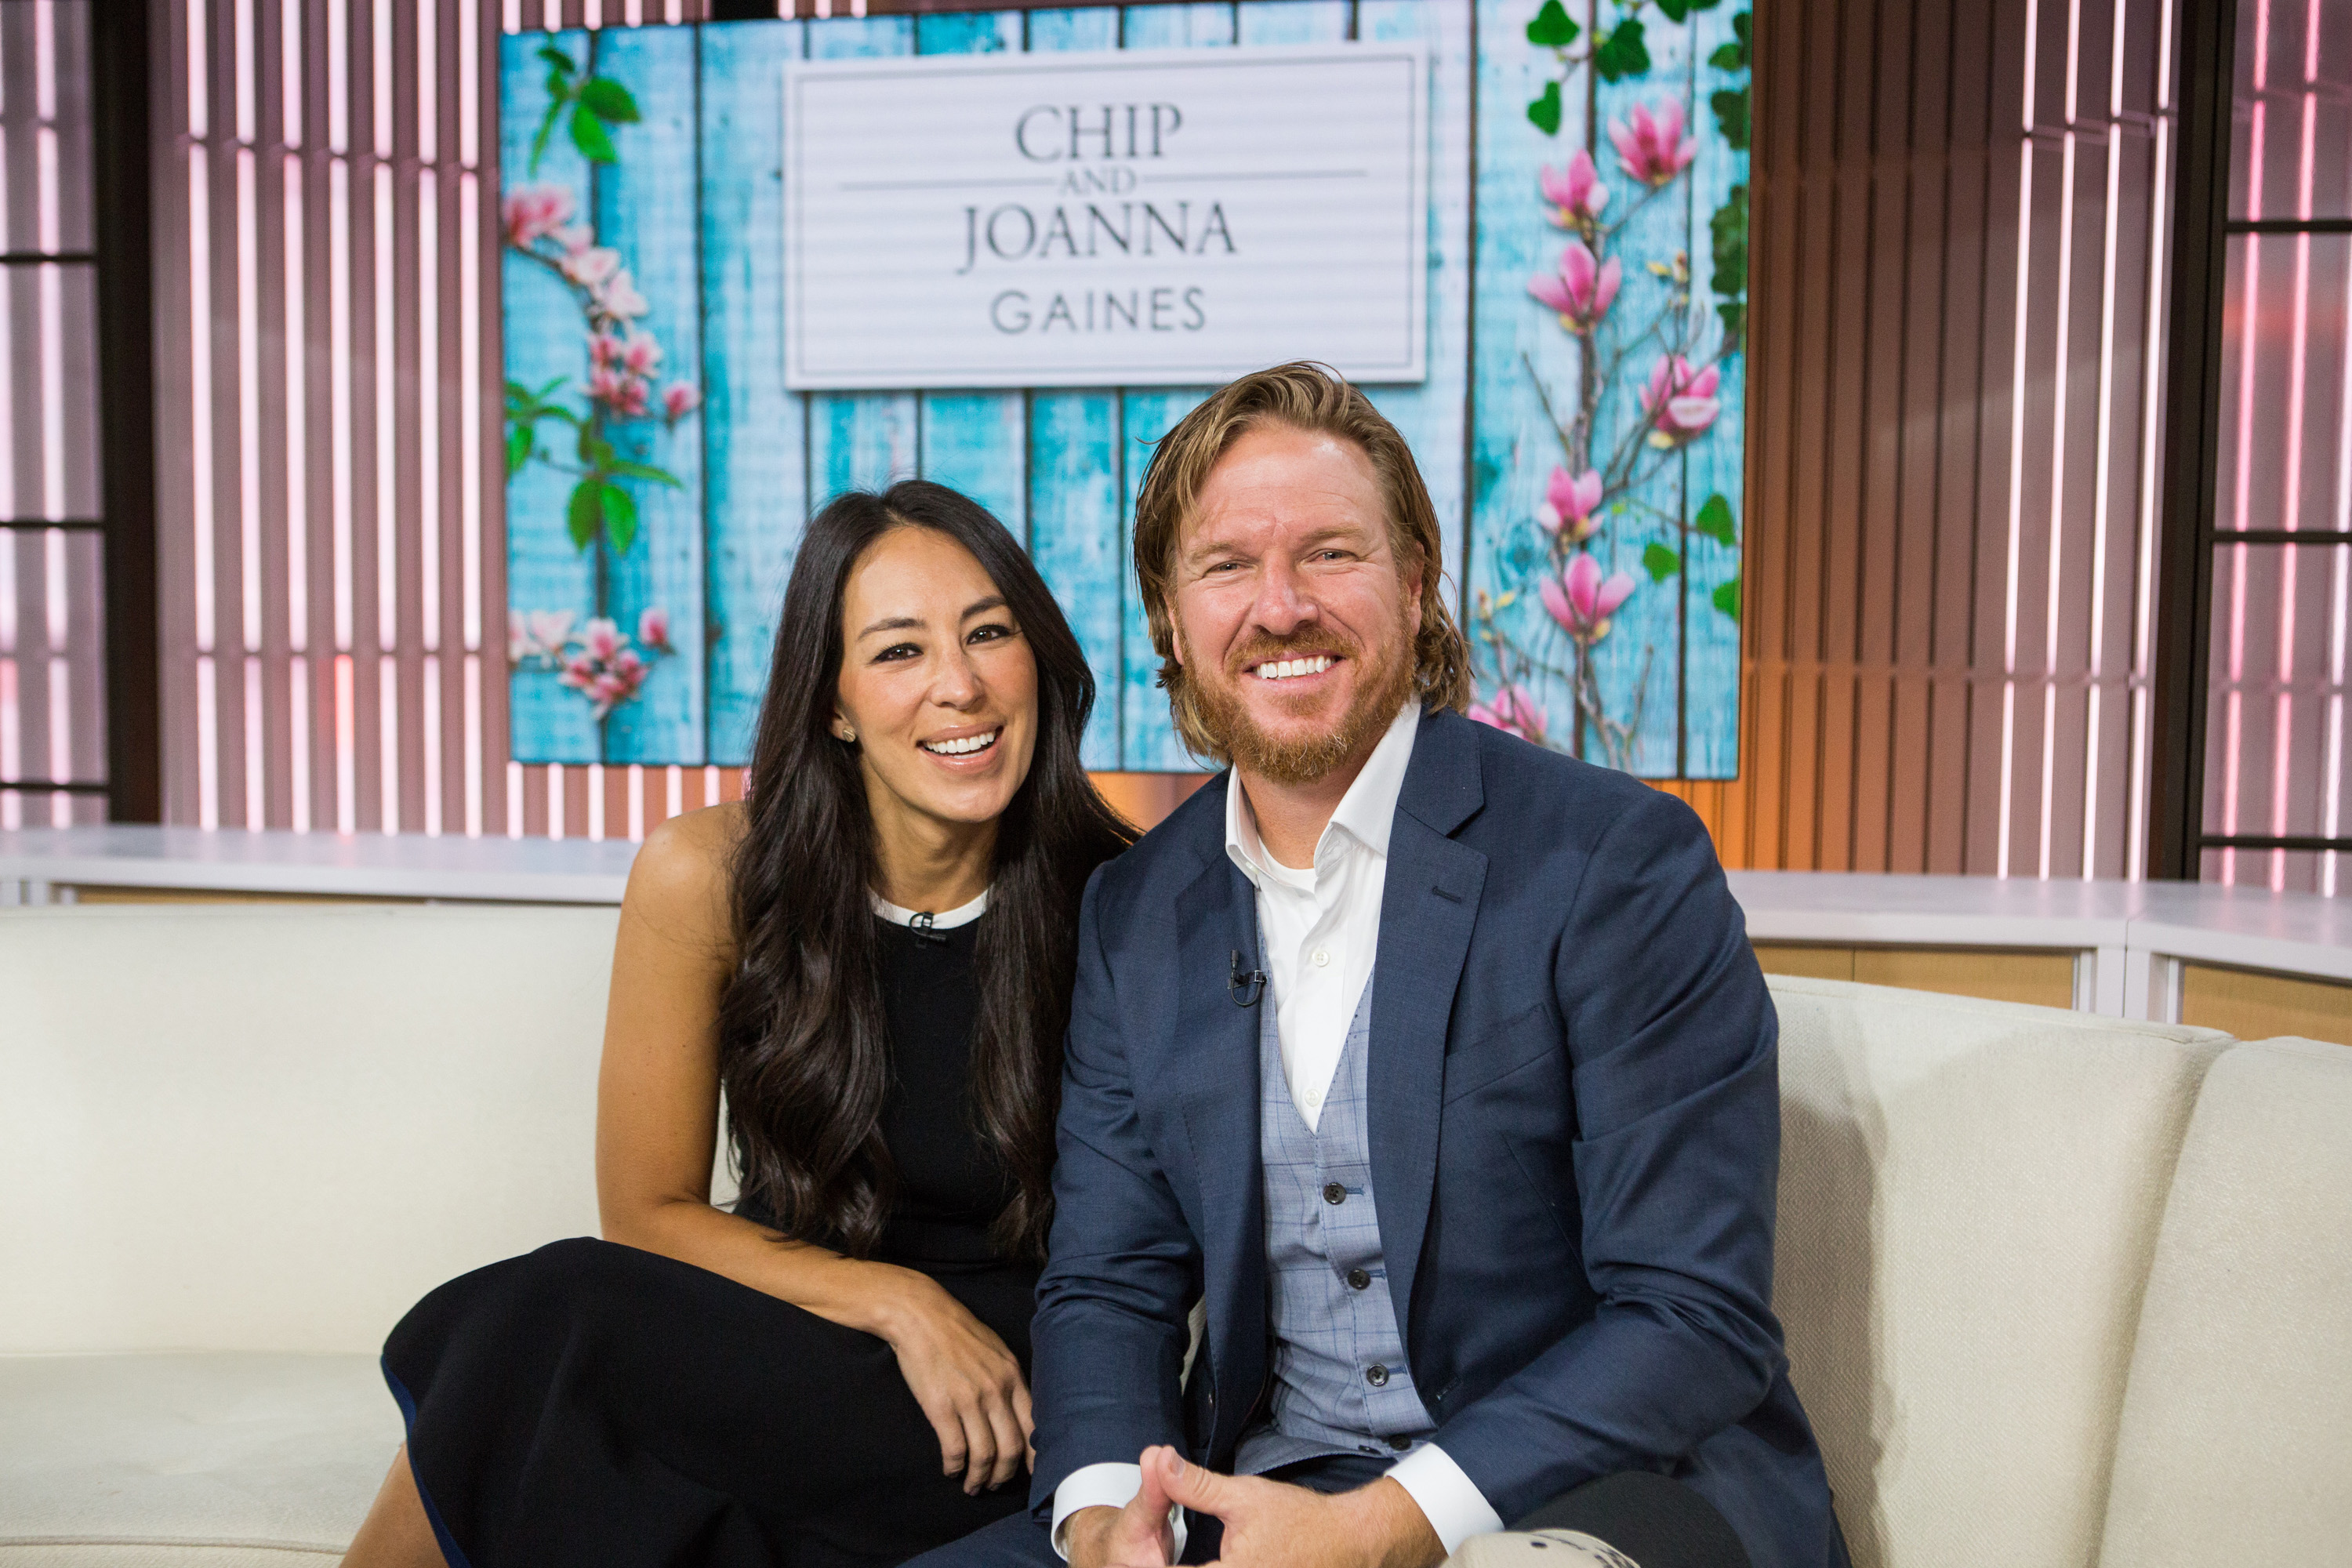 Chip and Joanna Gaines sitting on white couch